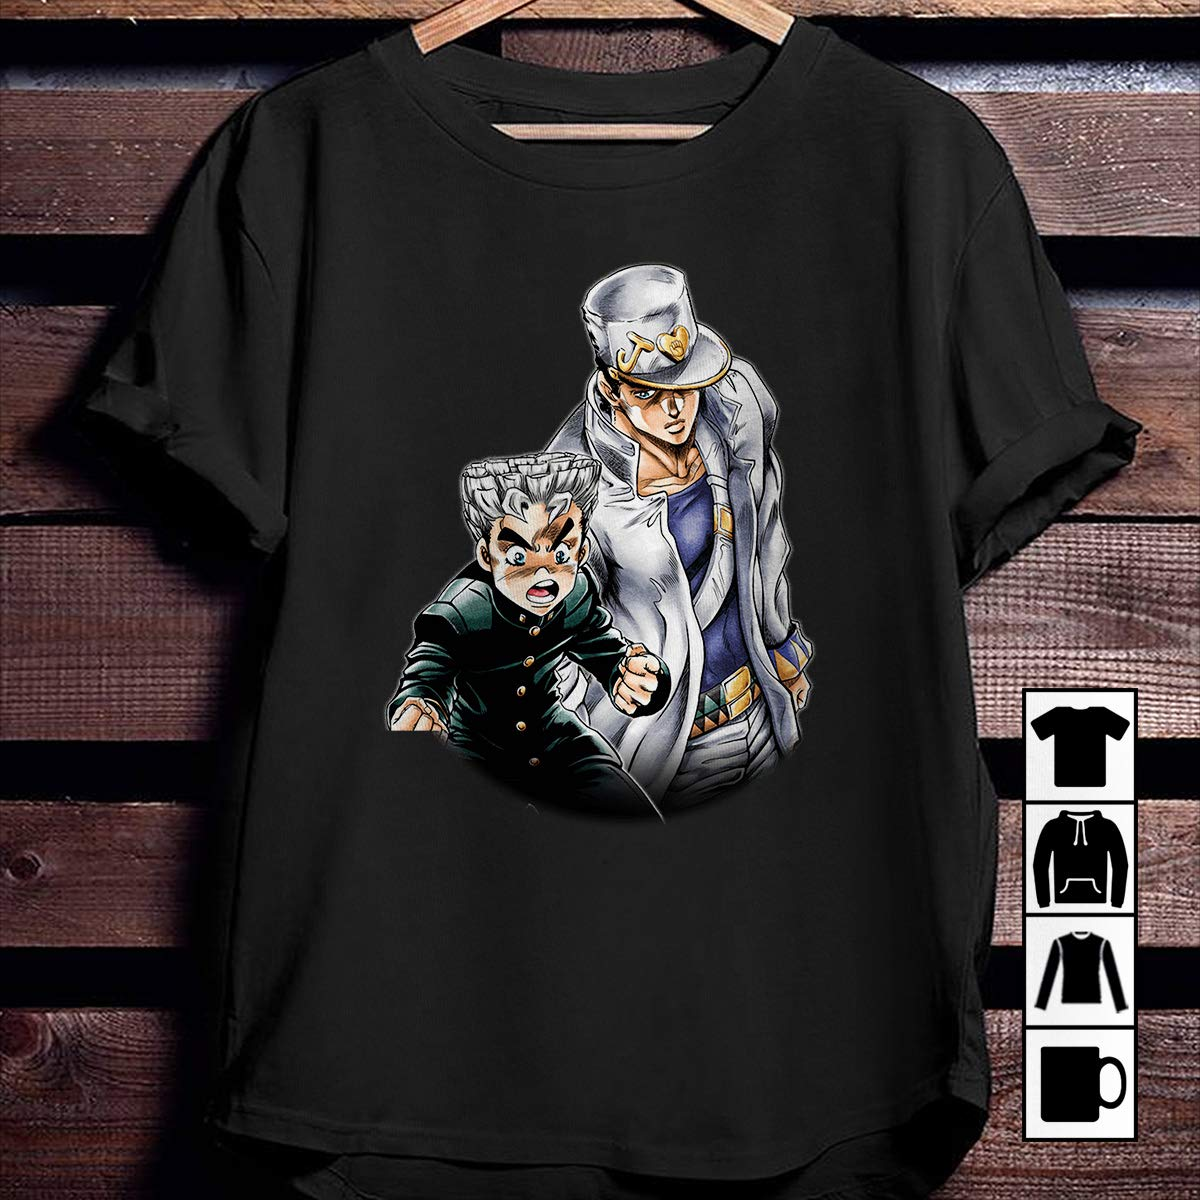 Jotaro Kujo Koichi Hirose Dio Brando Yoshikage Kira JoJo/_s Bizarre Adventure T Shirt Long Sleeve Sweatshirt Hoodie for Men and Women